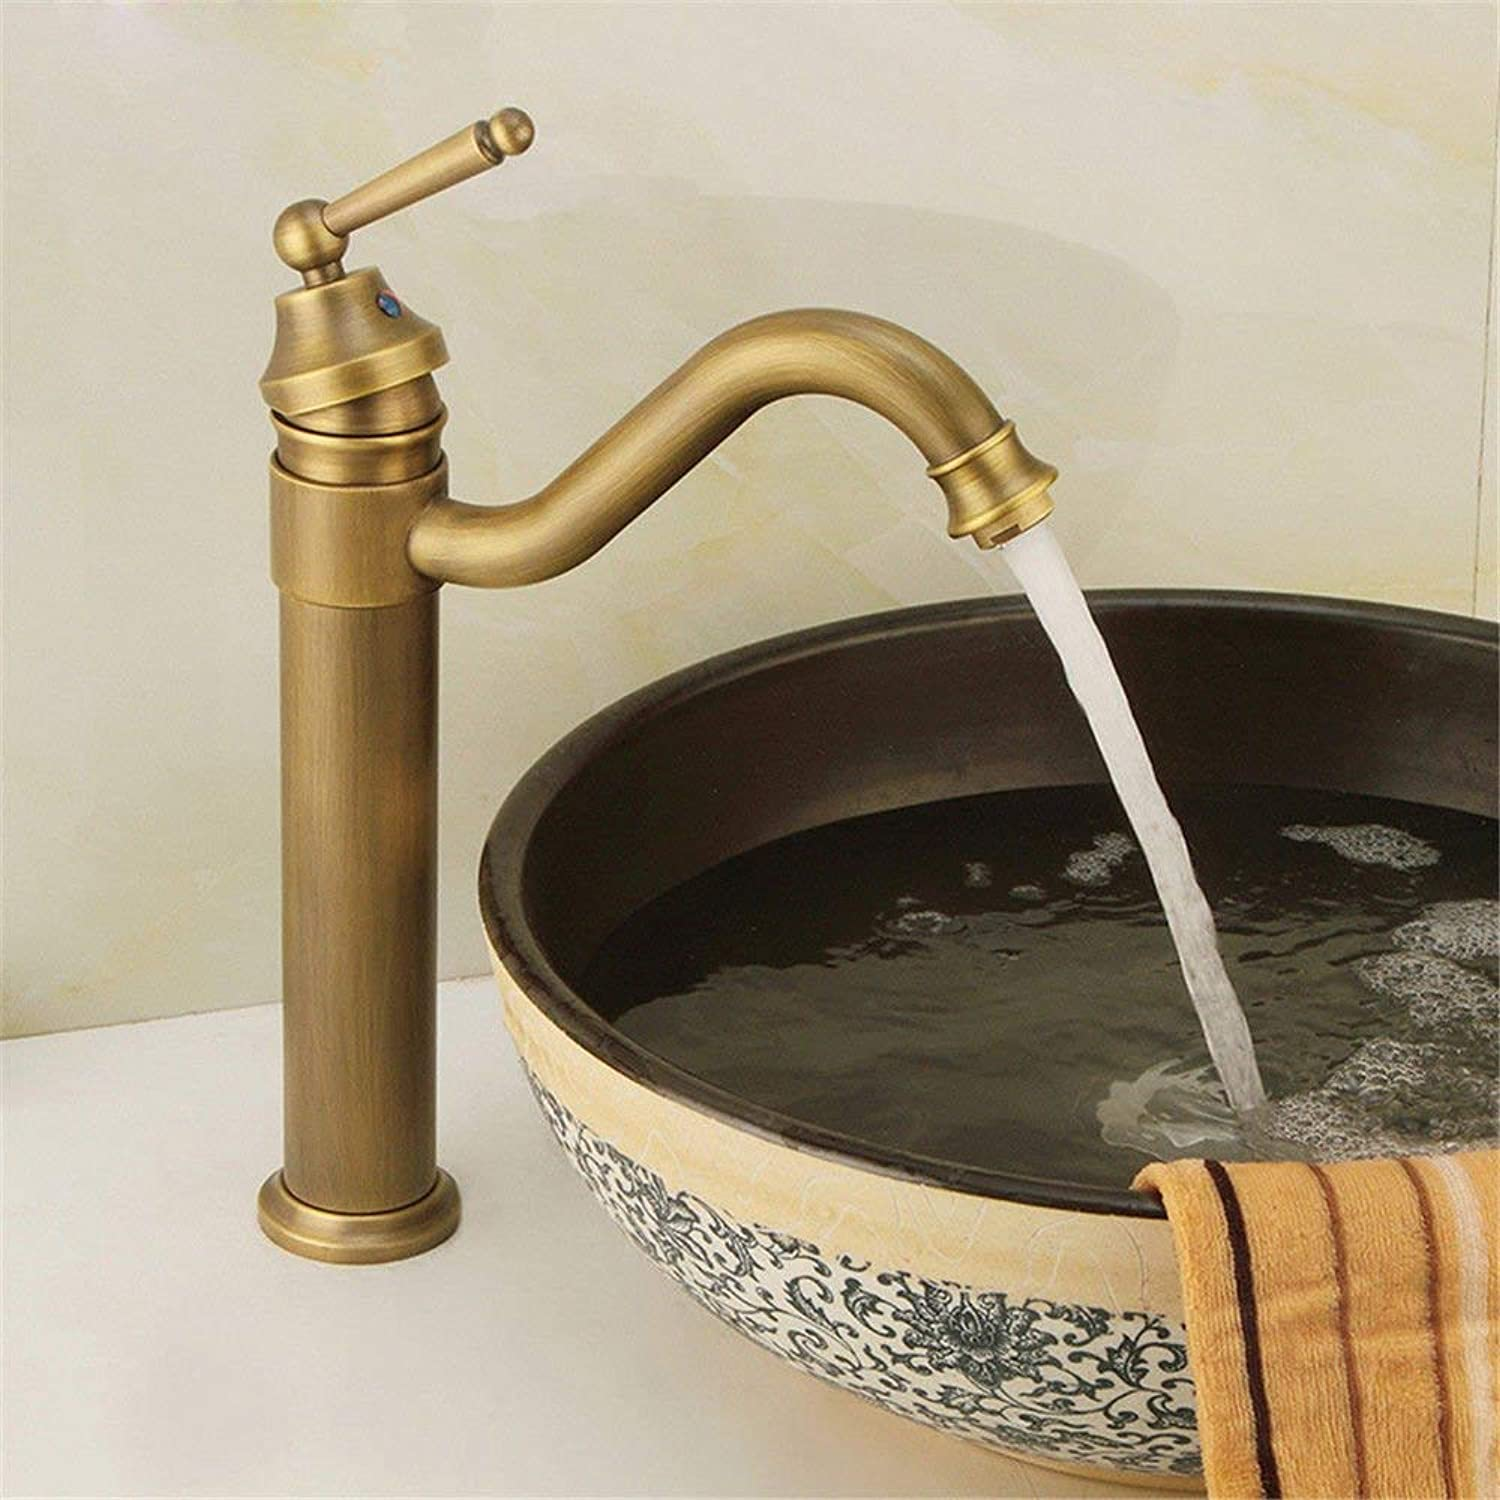 WMING HOME Sink Mixer Tap Bathroom Kitchen Basin Water Tap Leakproof Save Water Modern All-Copper Antique Hot And Cold Water Taps Plus High Single Hole Sink Basin Mixer B (color   A)